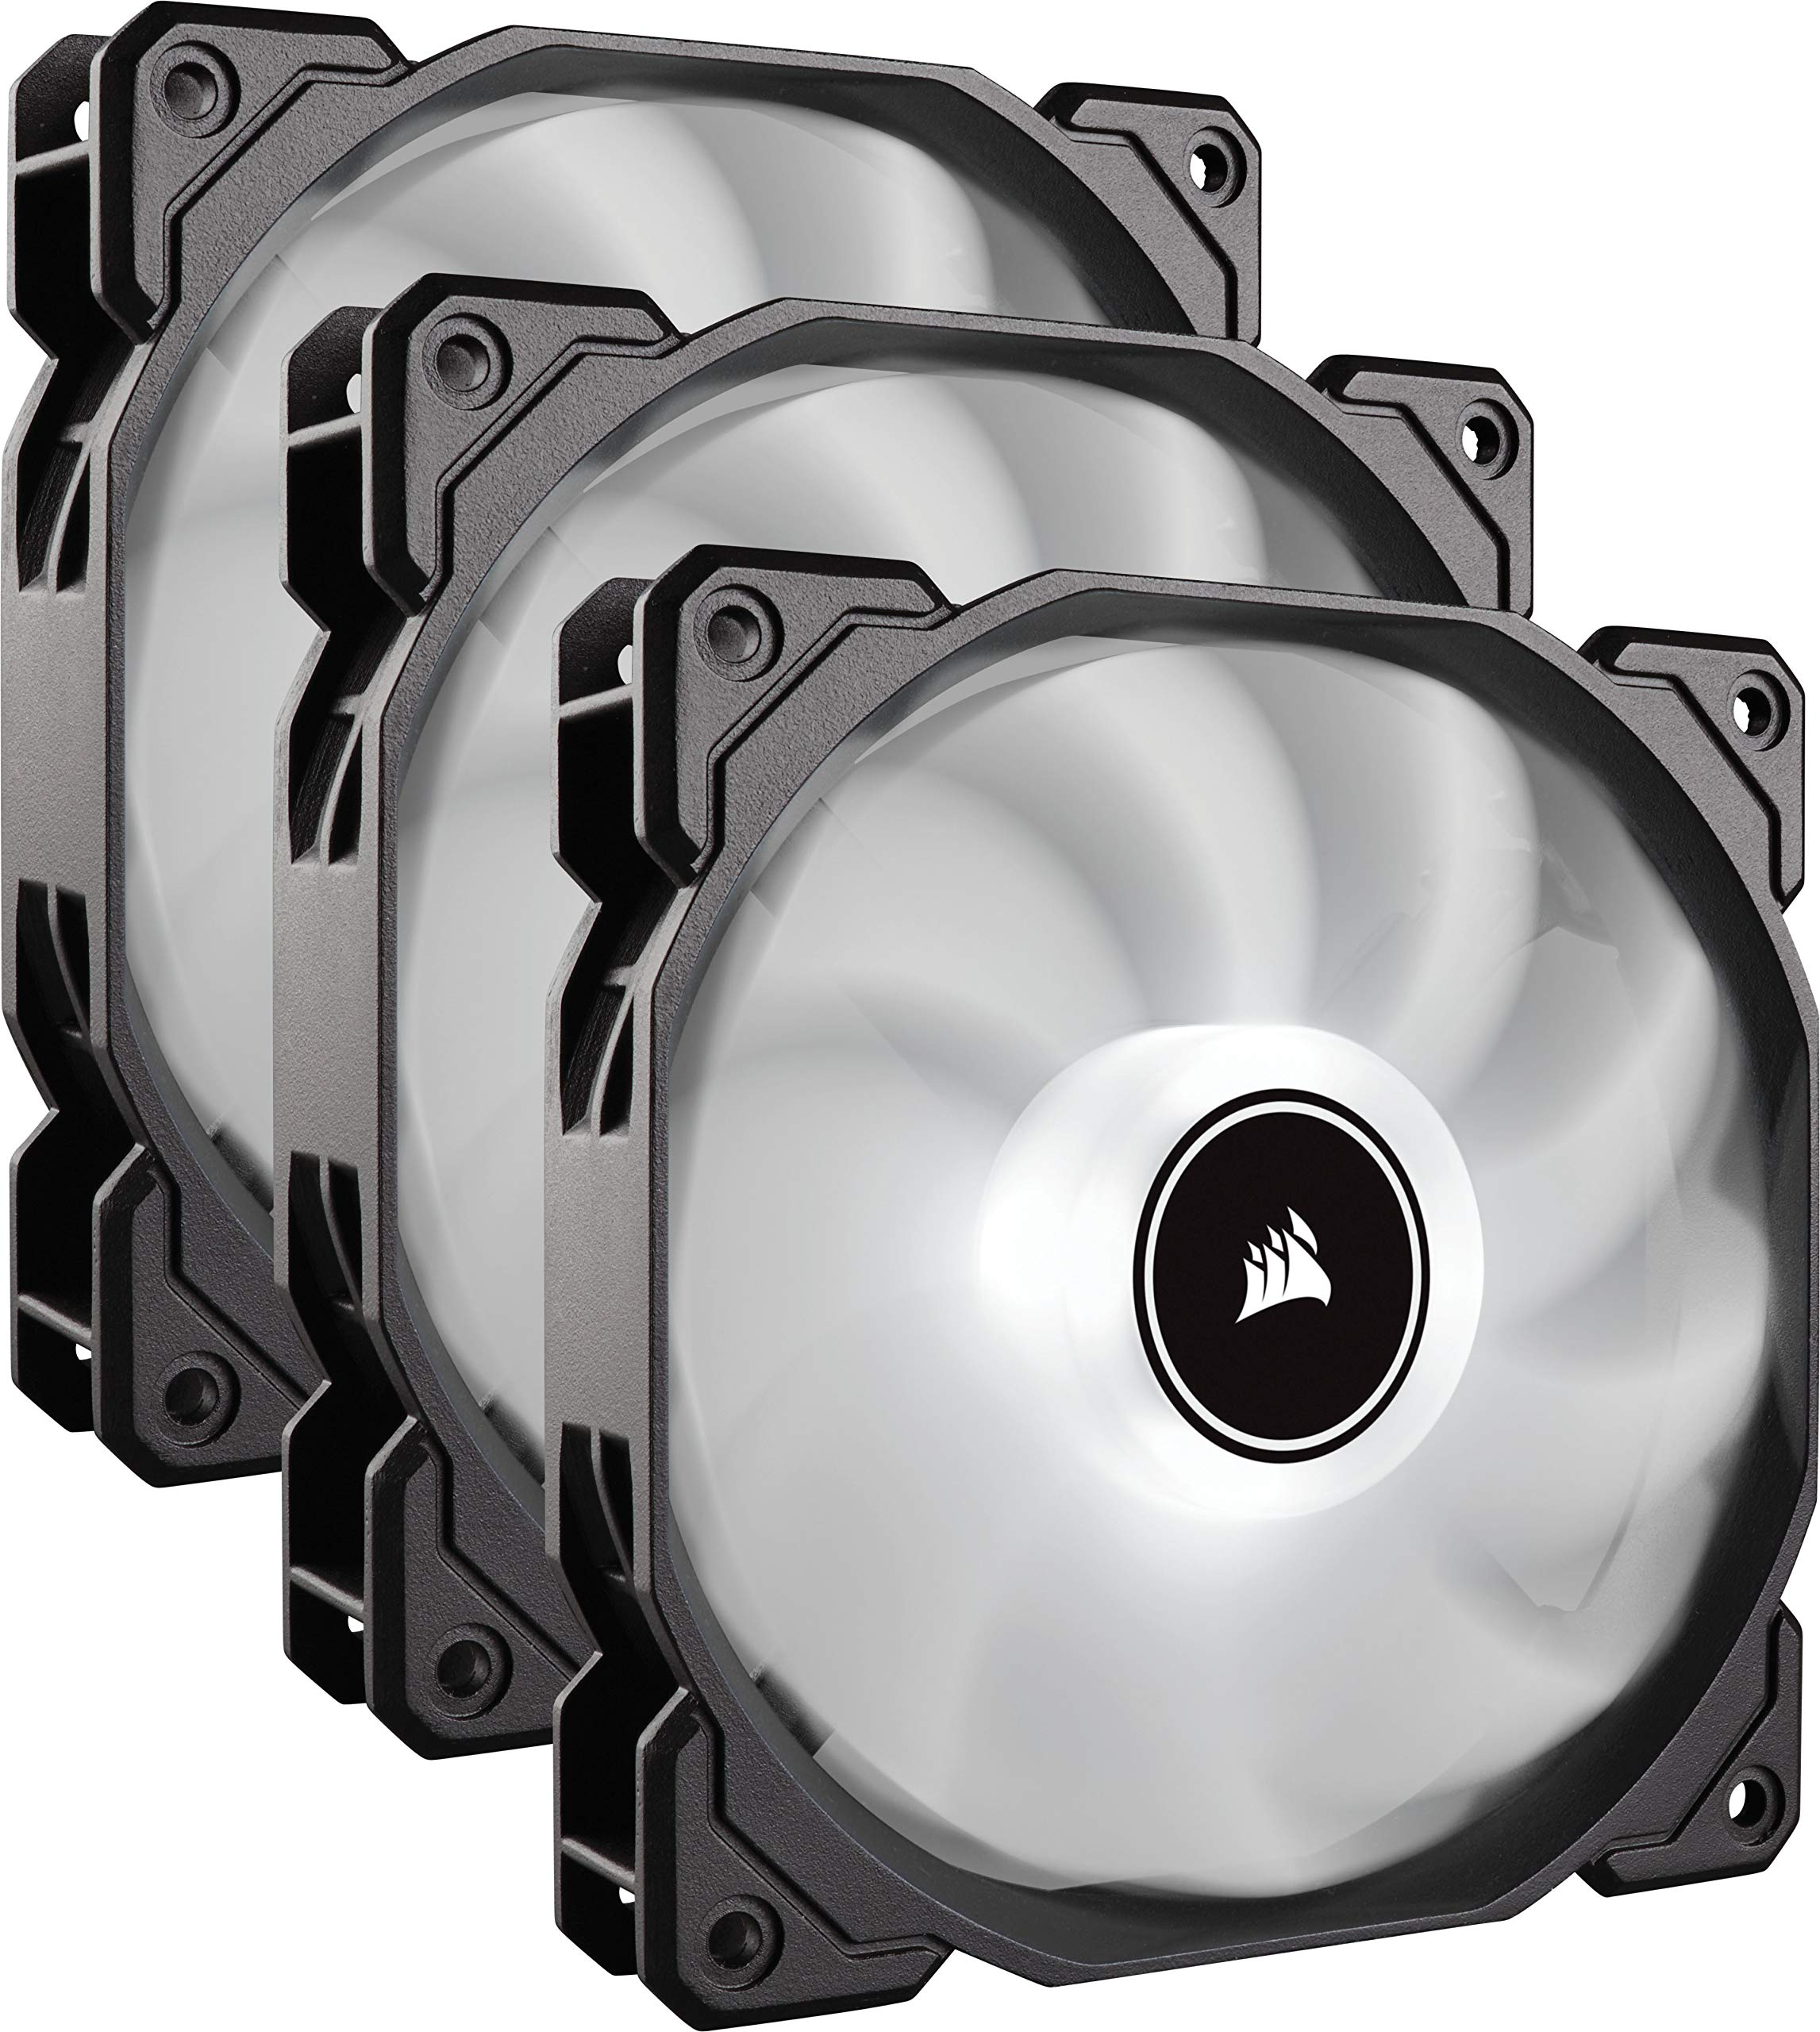 CORSAIR AF120 LED Low Noise Cooling Fan Triple Pack - White Cooling CO-9050082-WW by Corsair